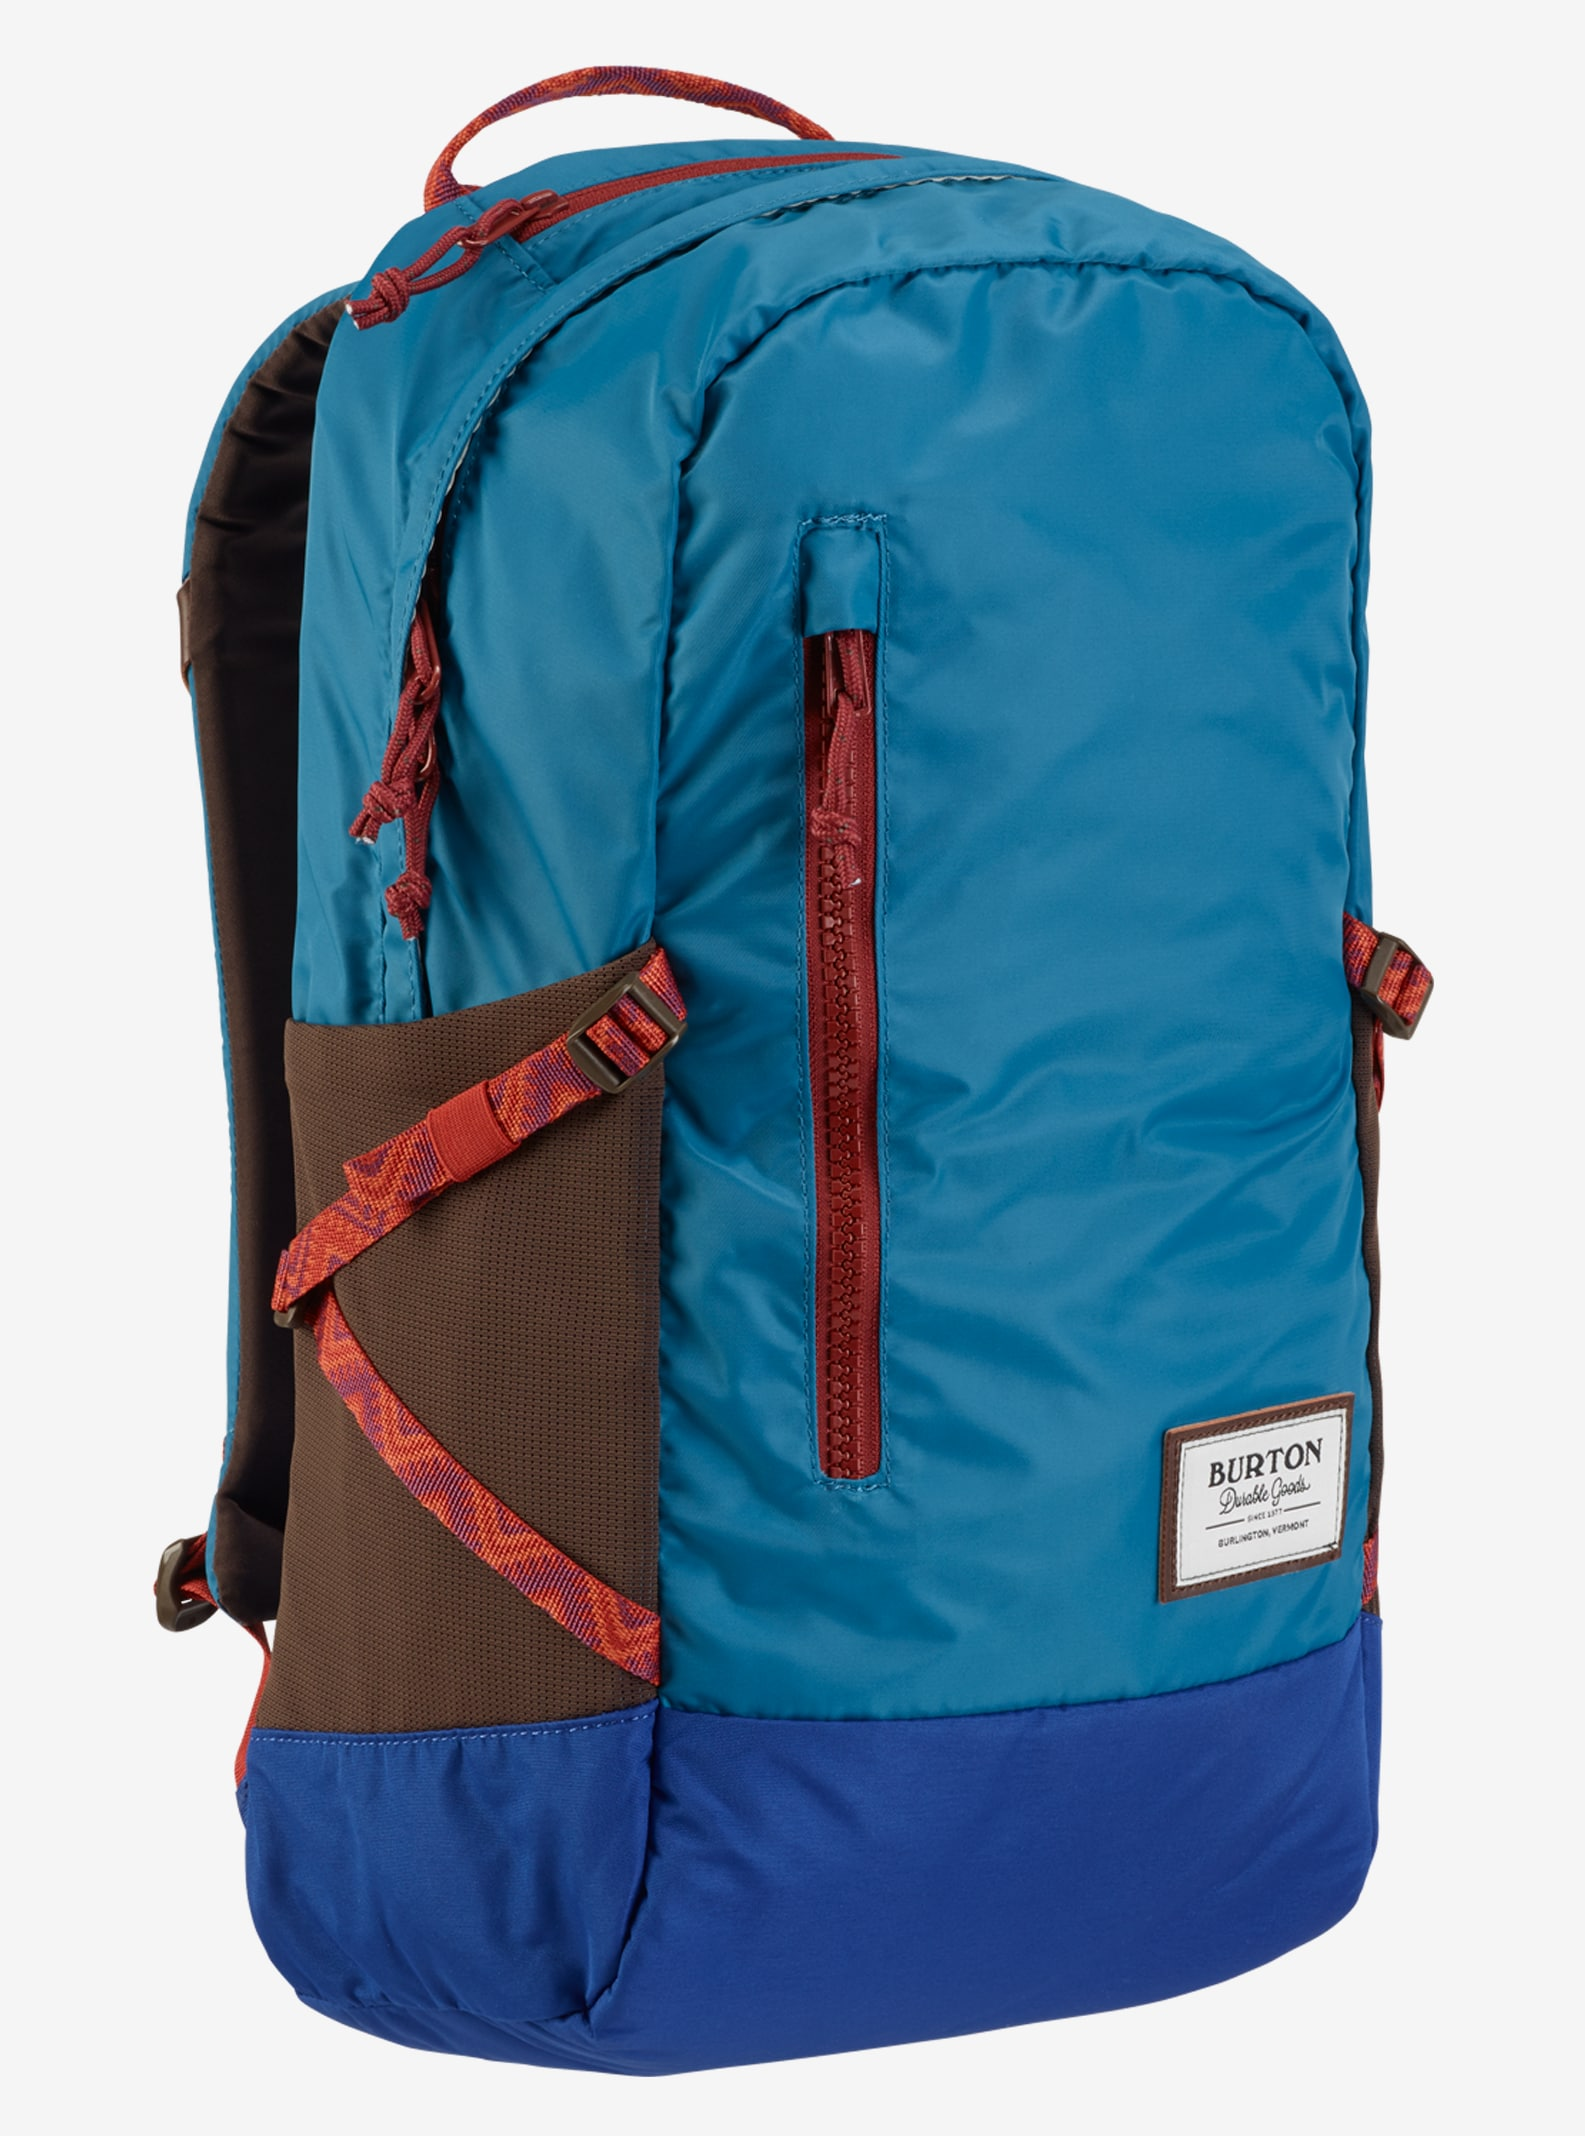 Burton Women's Prospect Backpack shown in Jaded Flight Satin